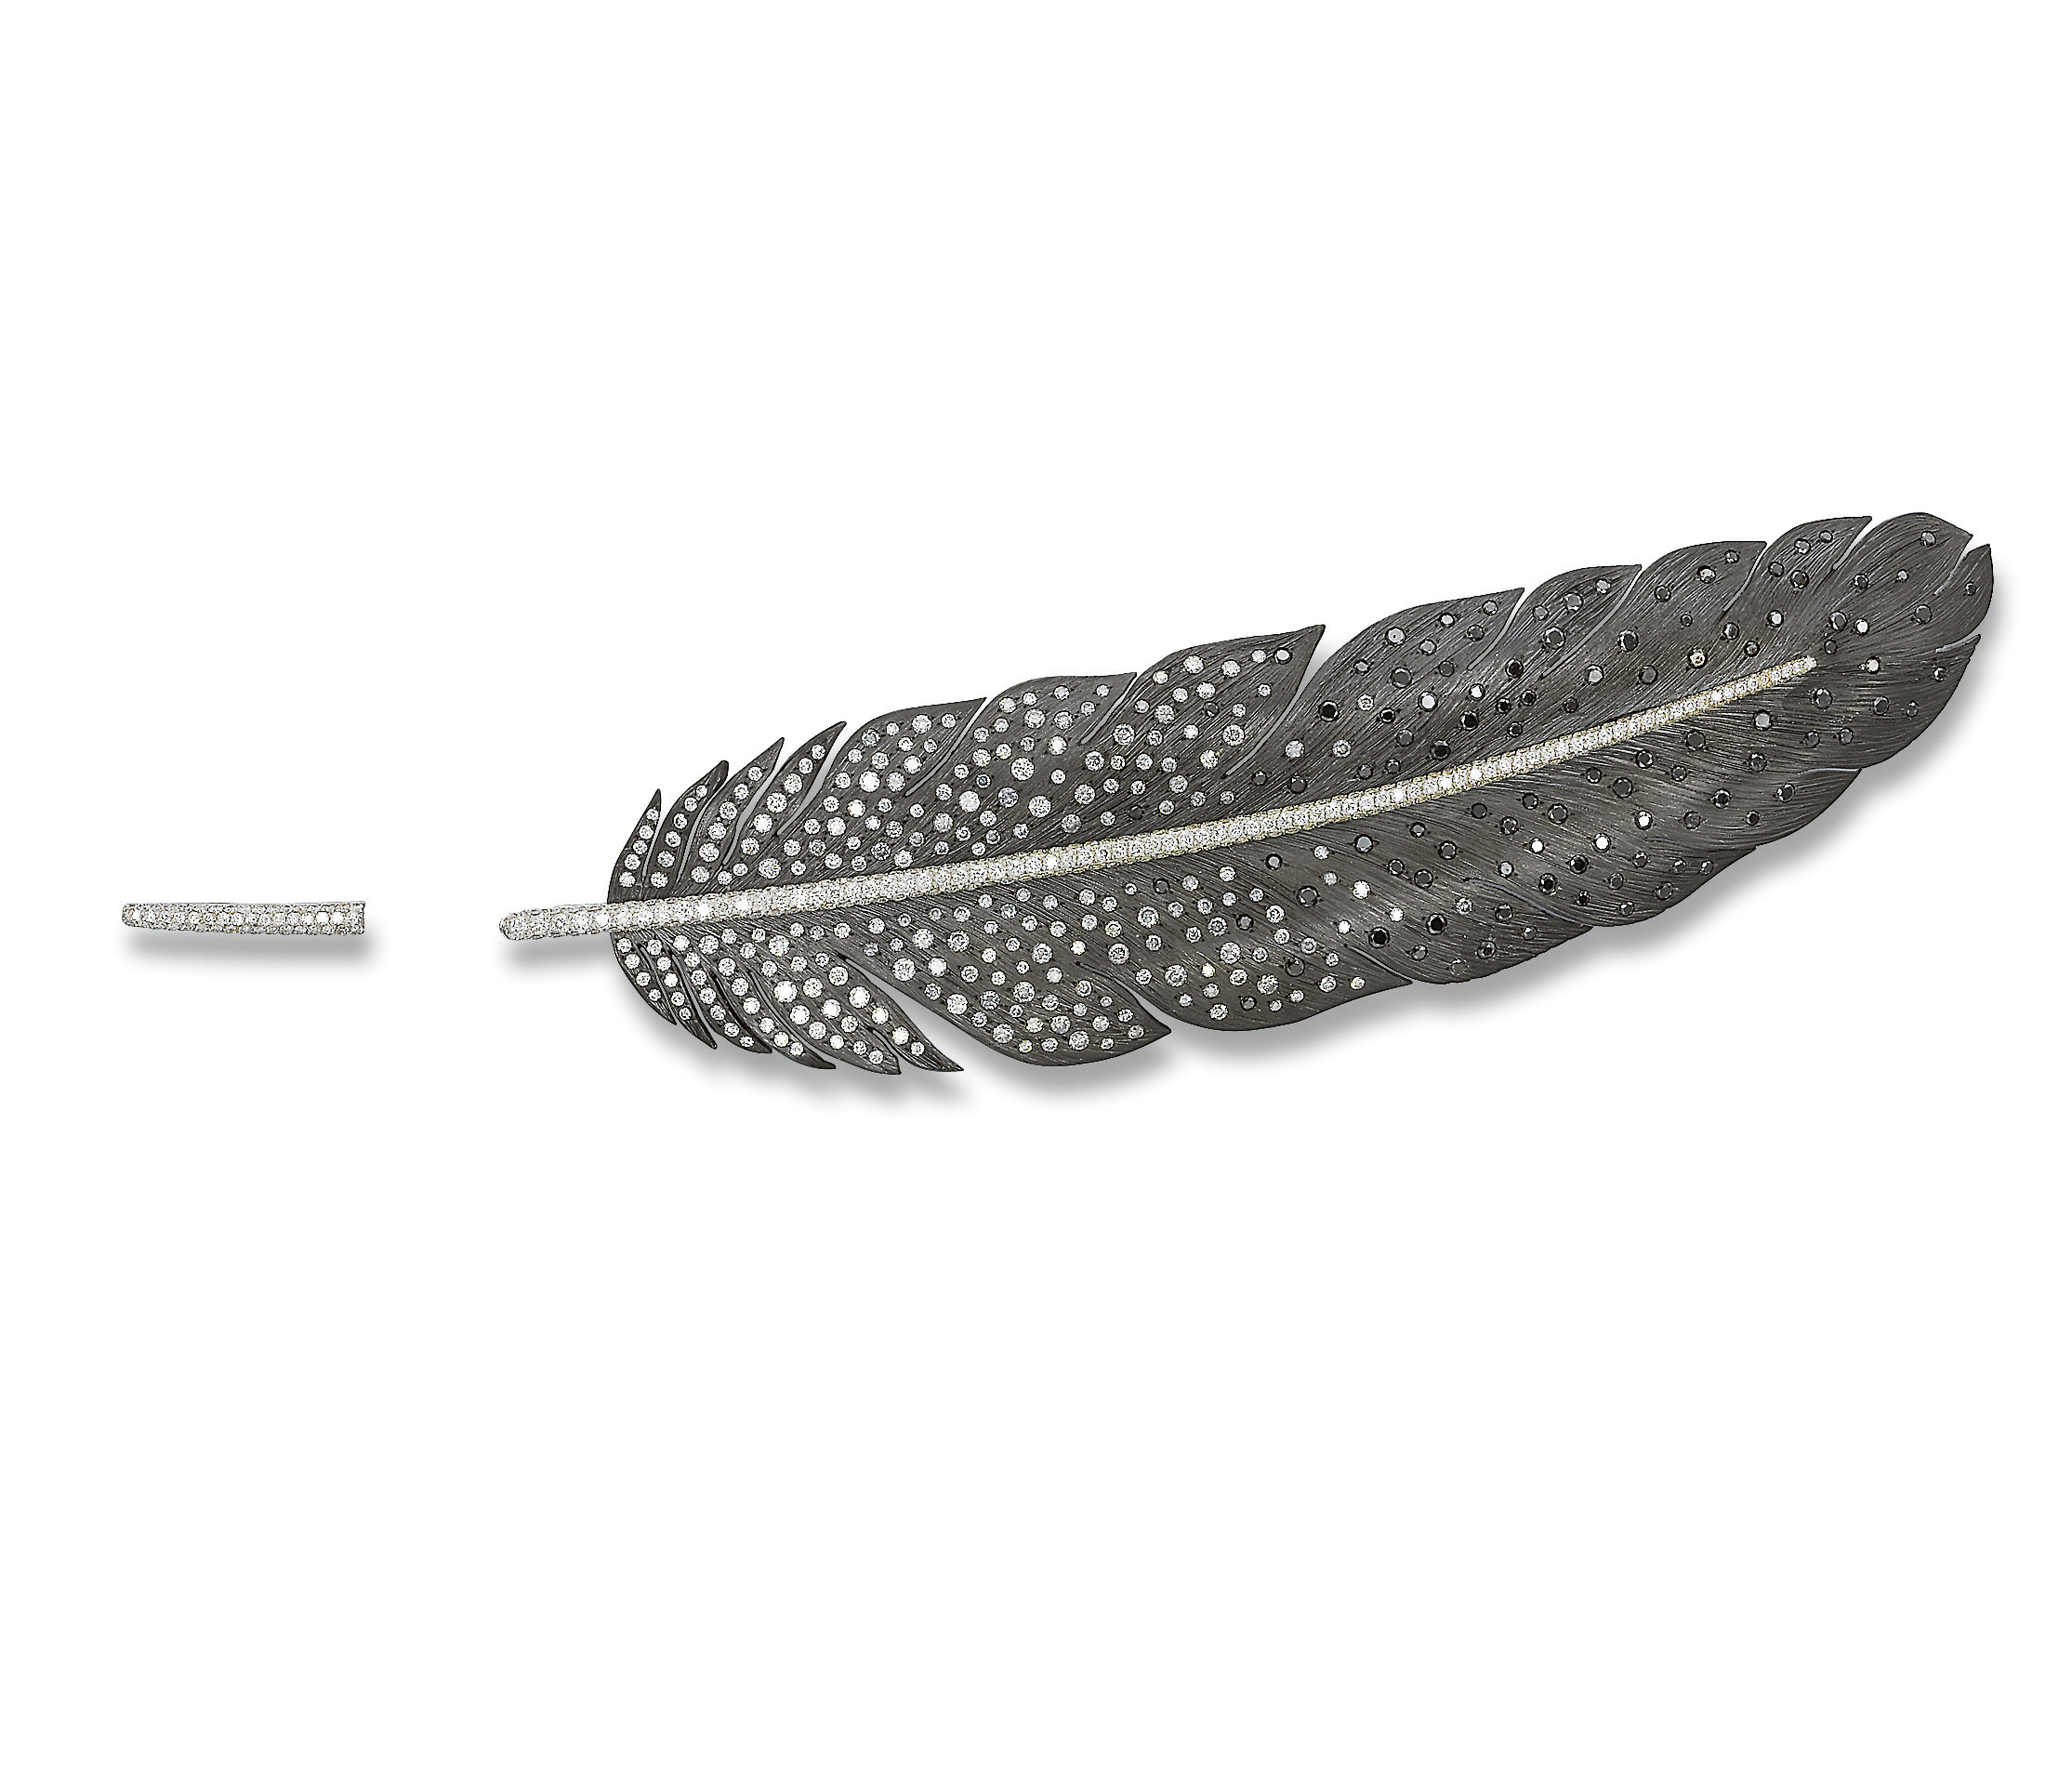 AN ELEGANT TITANIUM, COLOURED DIAMOND AND DIAMOND FEATHER BROOCH, BY MICHELE DELLA VALLE